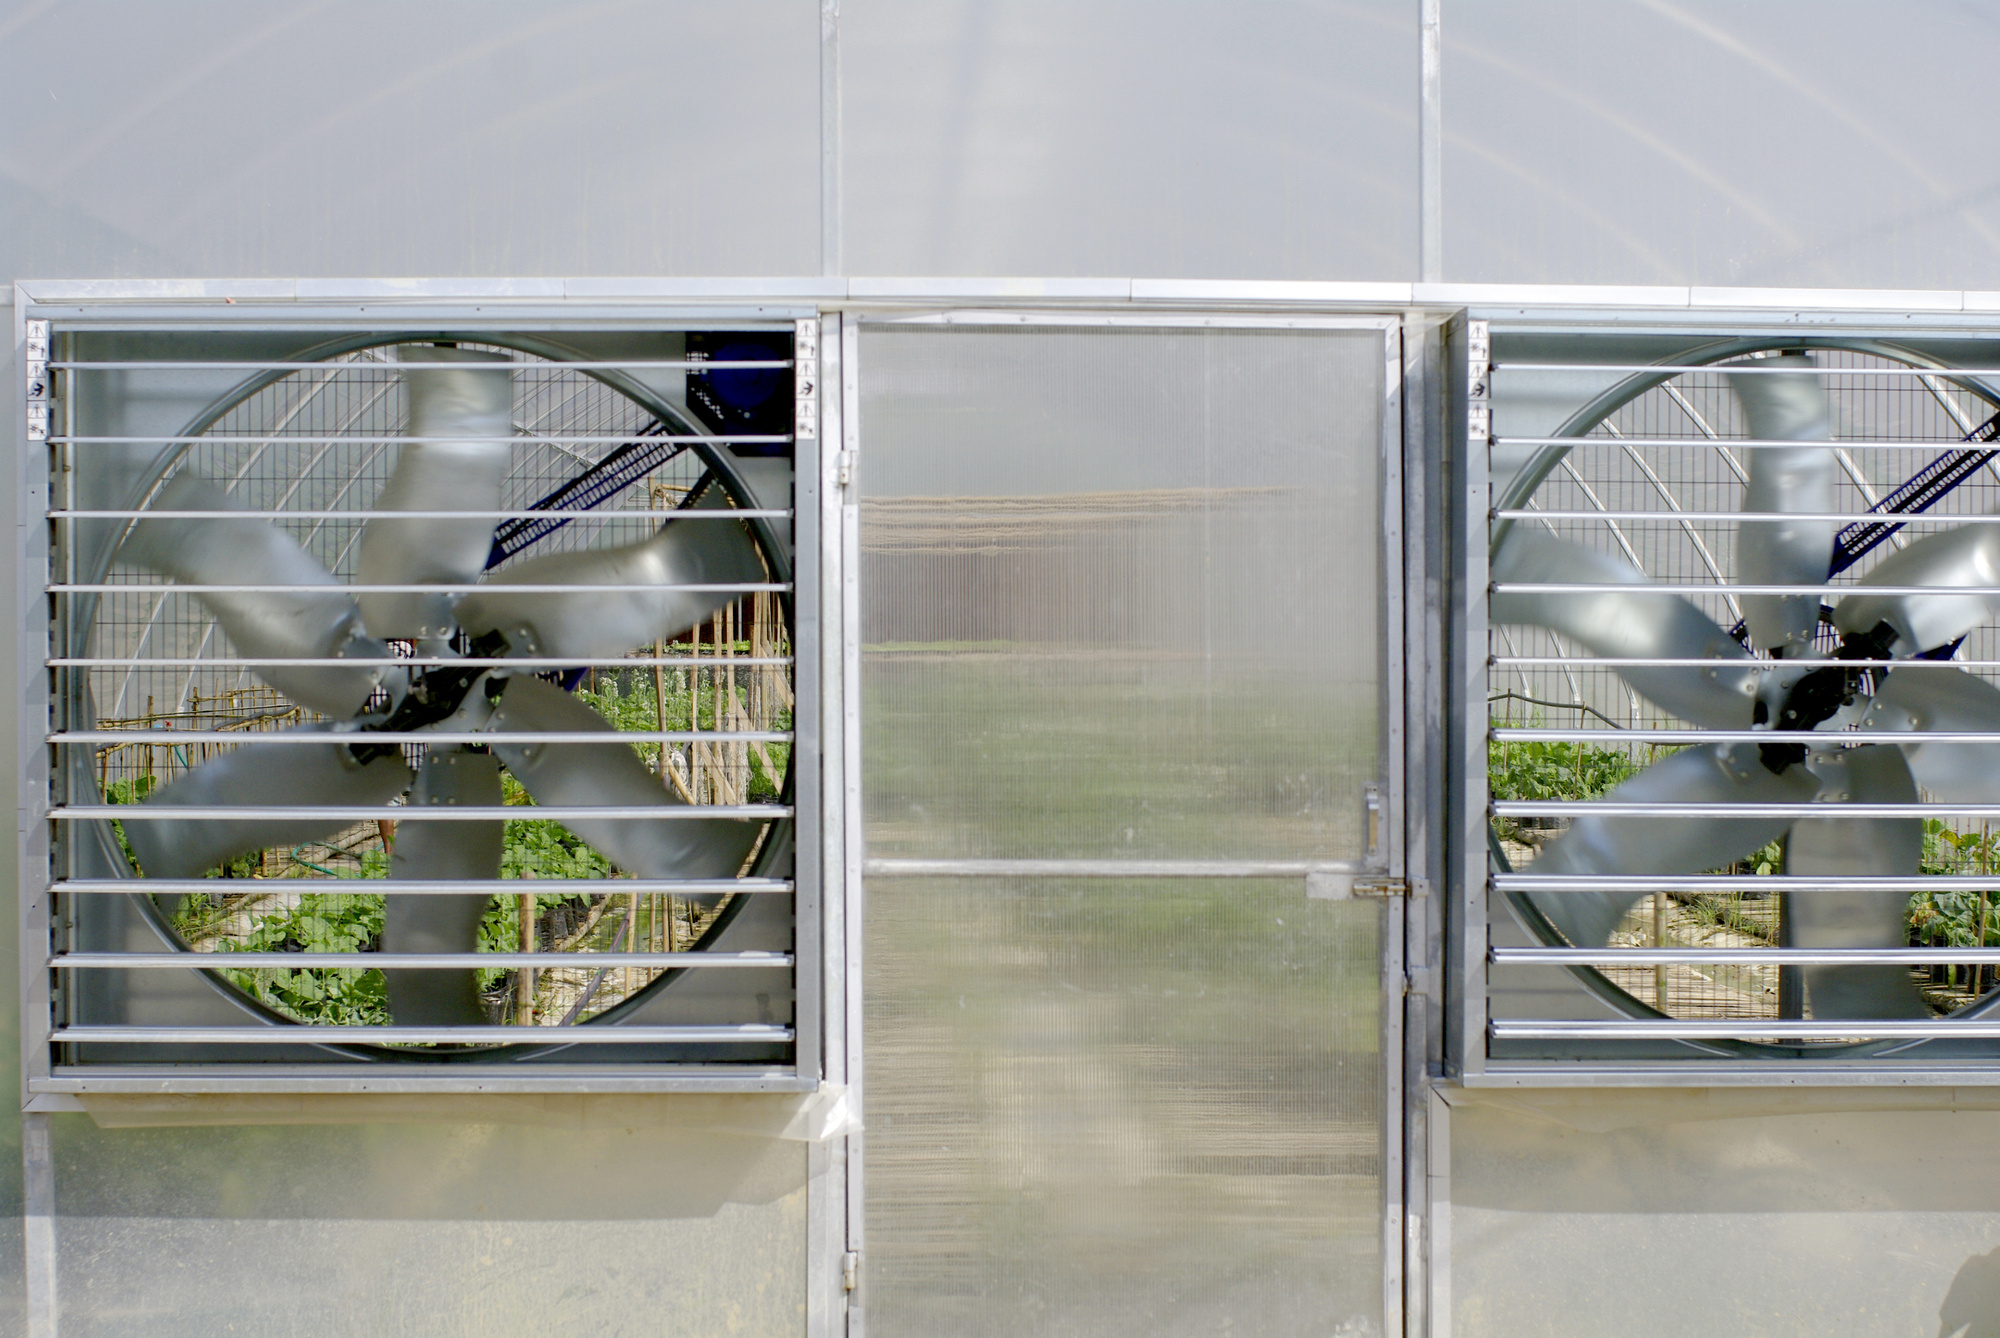 Why Is It Important That A Greenhouse Have An Exhaust Fan